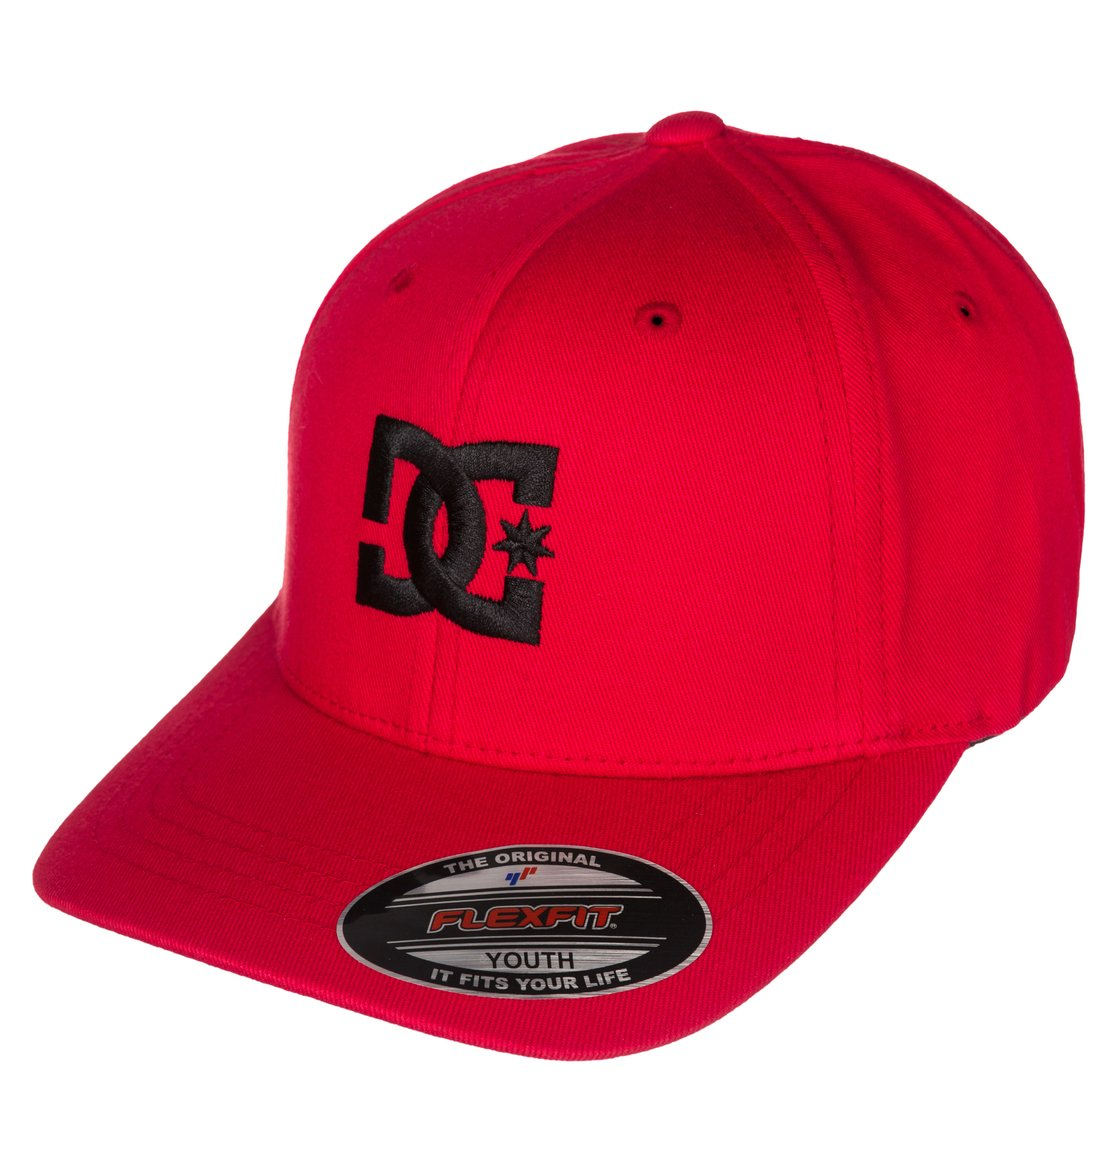 DC Shoes is an American company that specializes in footwear for action sports, including skateboarding and snowboarding. The company also manufactures apparel, bags, accessories, hats, shirts, and .